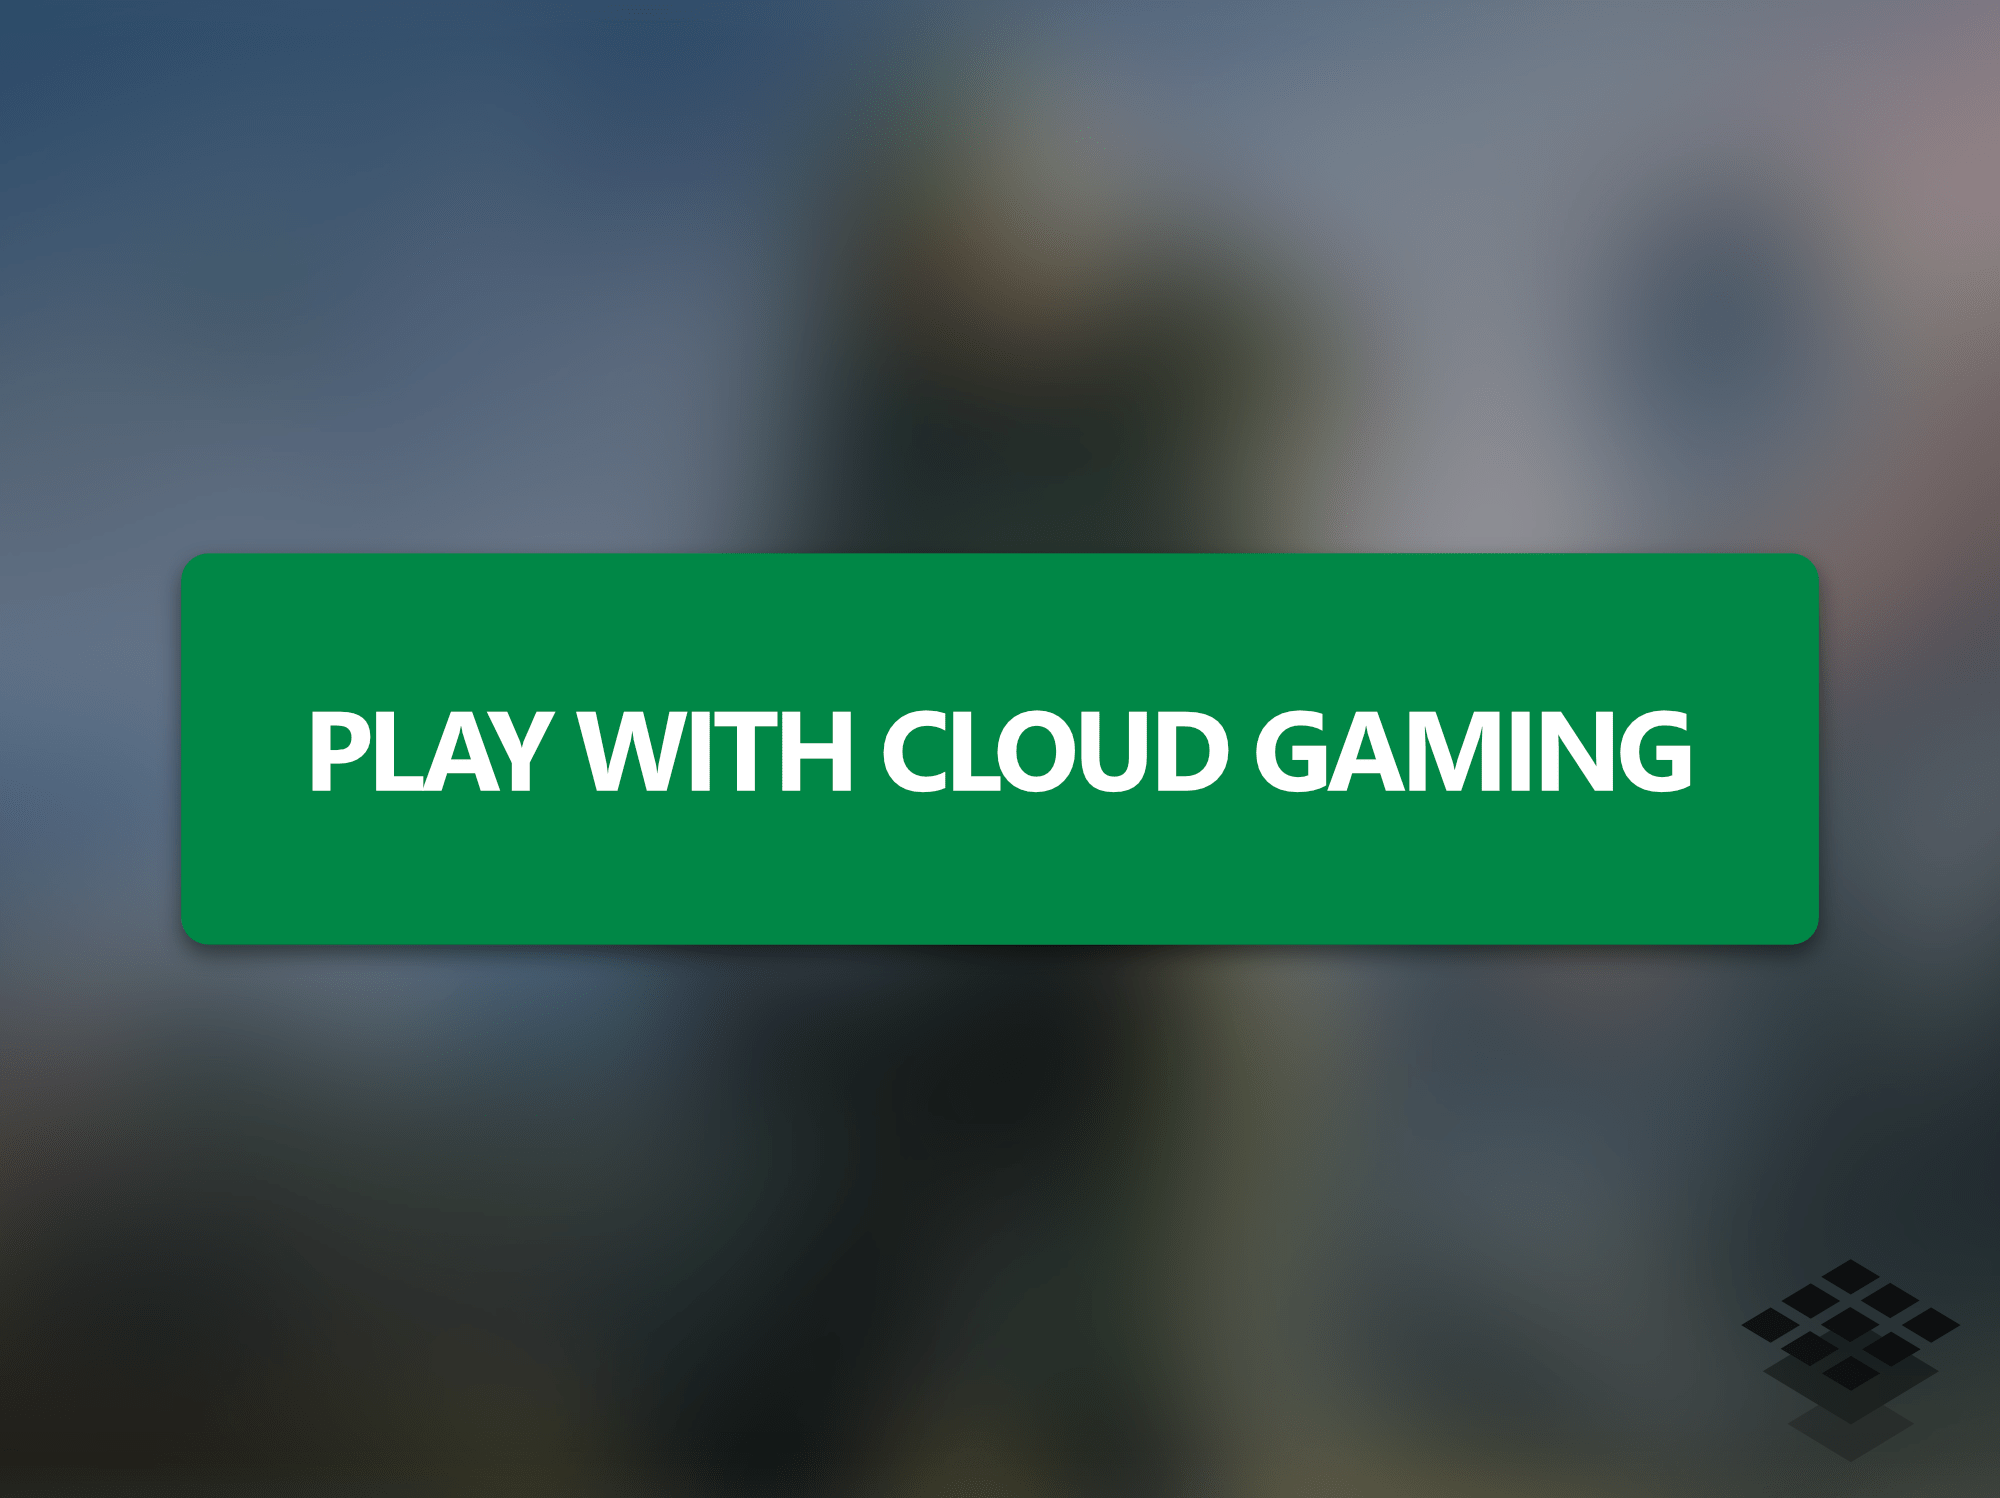 Gaming Platform Wars   Xbox Web Store now includes 'Play with Cloud Gaming' button